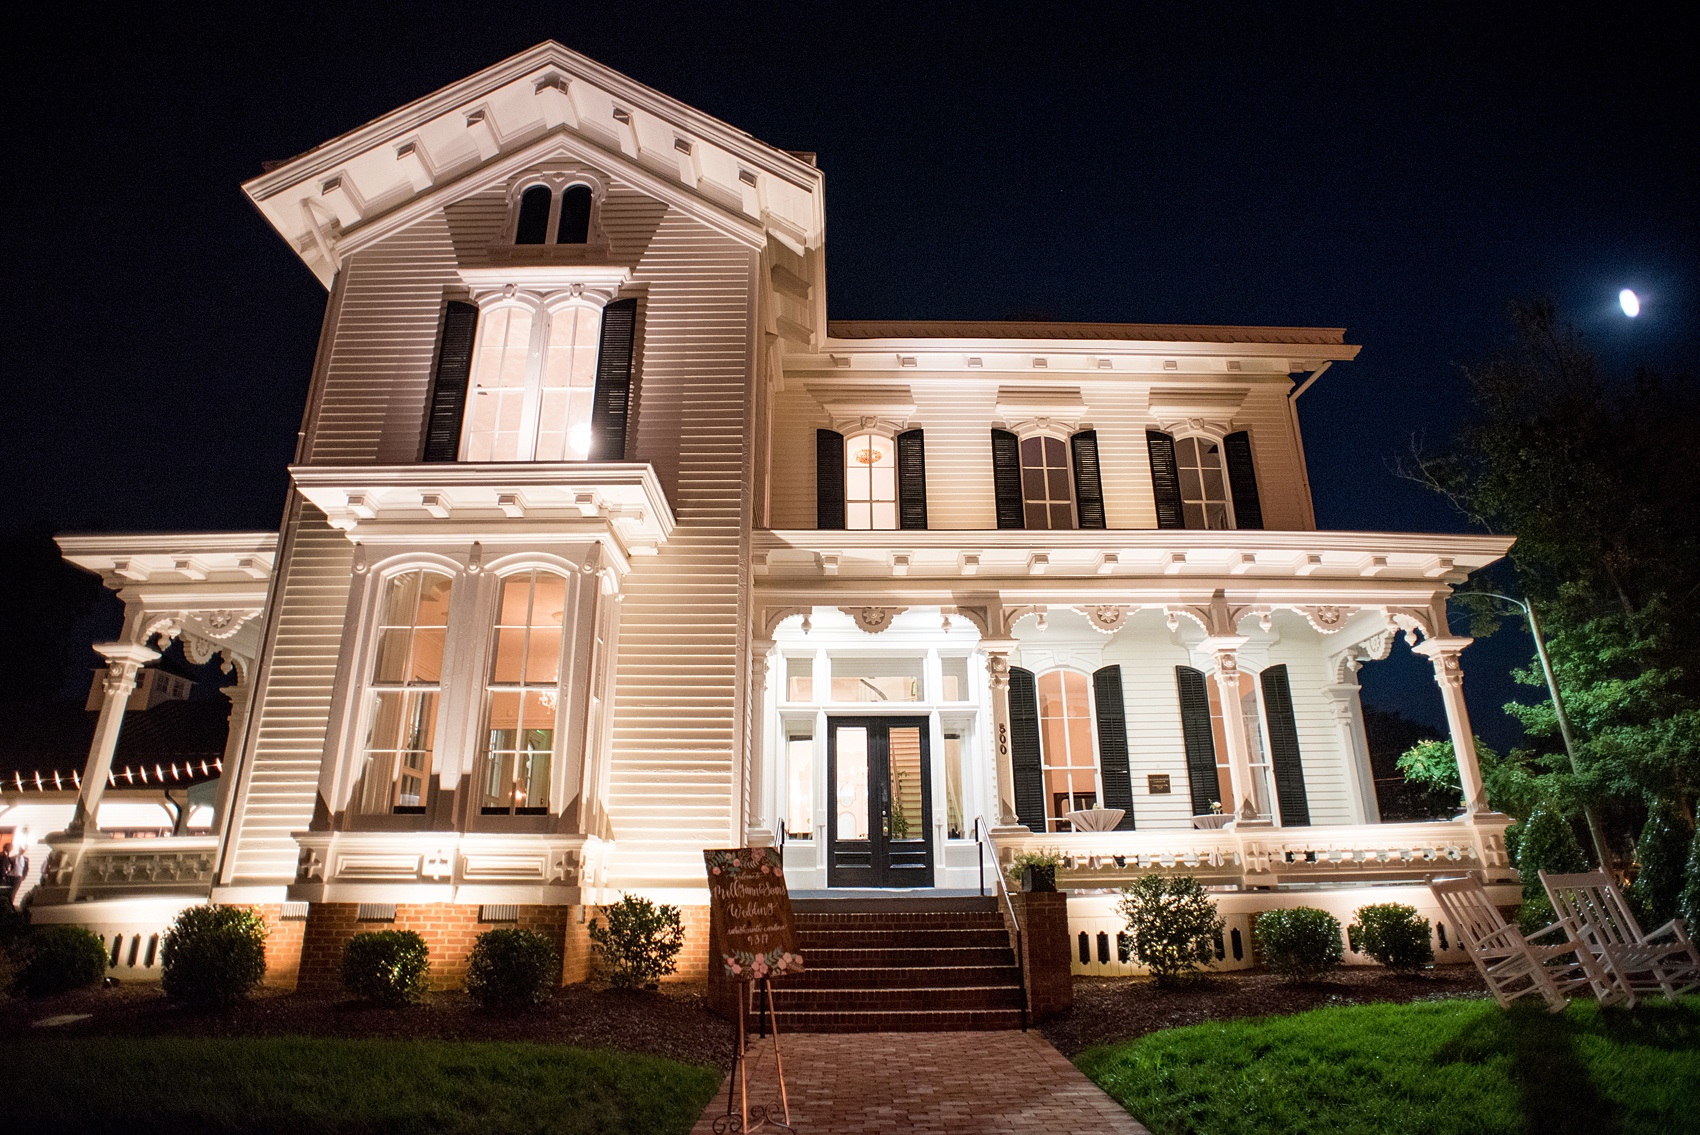 Mikkel Paige Photography pictures from a wedding at Merrimon-Wynne House in Raleigh, NC. Photo of historic home at night.